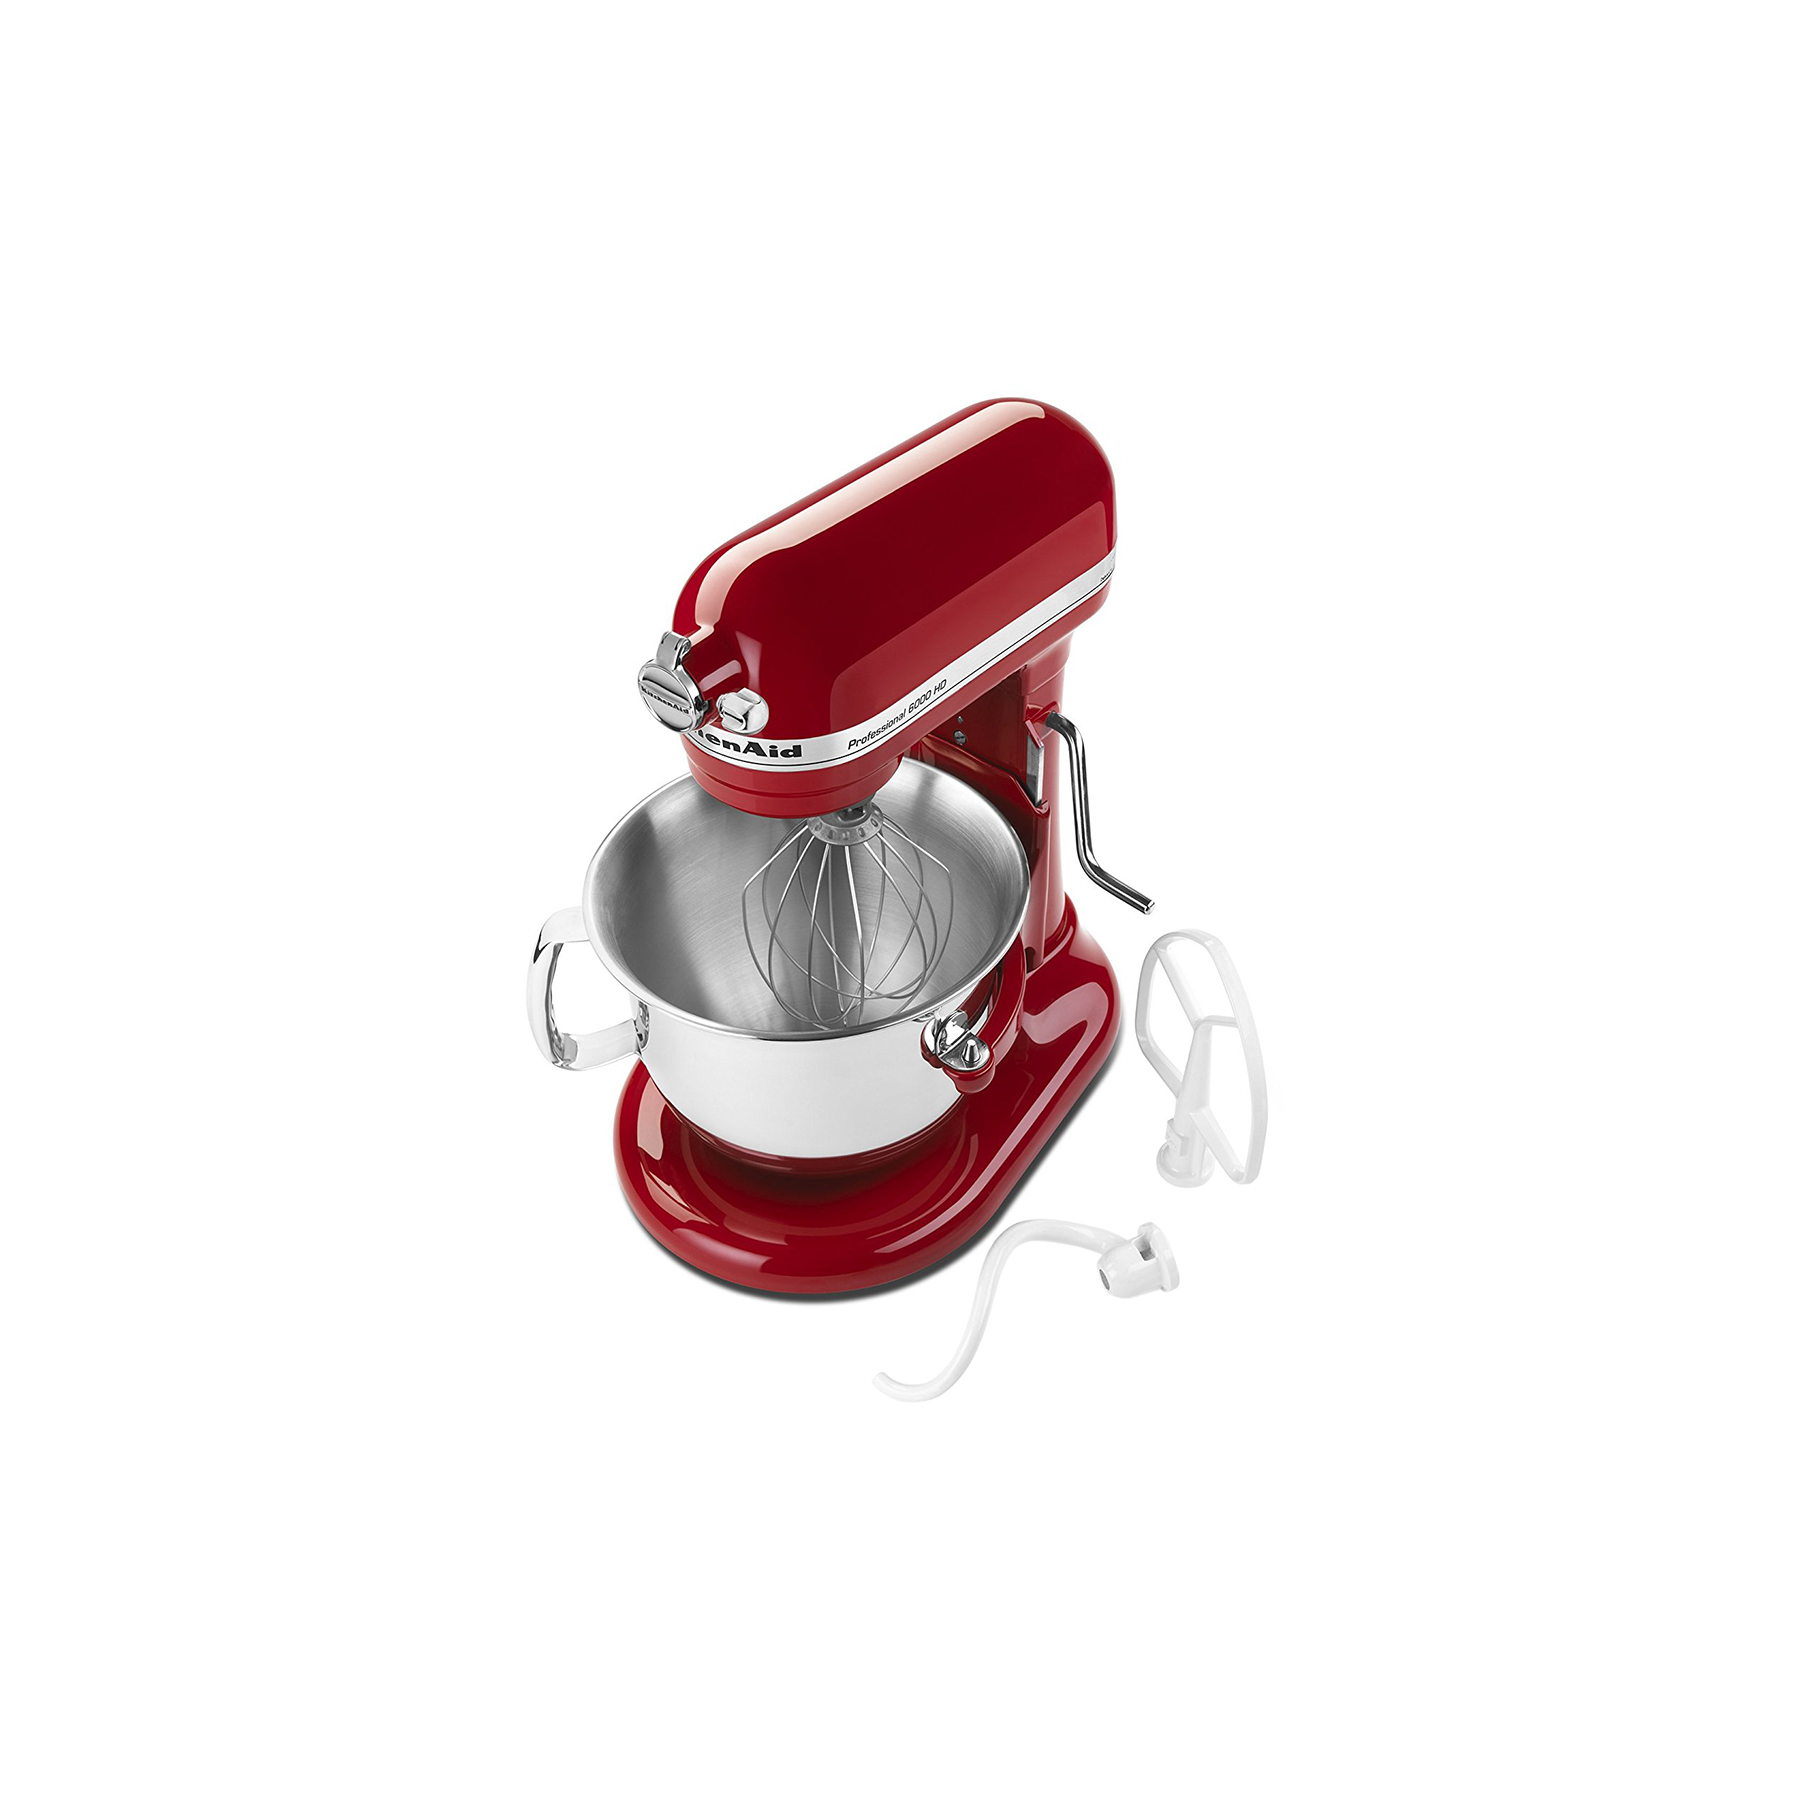 Amazon Is Running a One-Day Sale onKitchenAid Stand Mixers